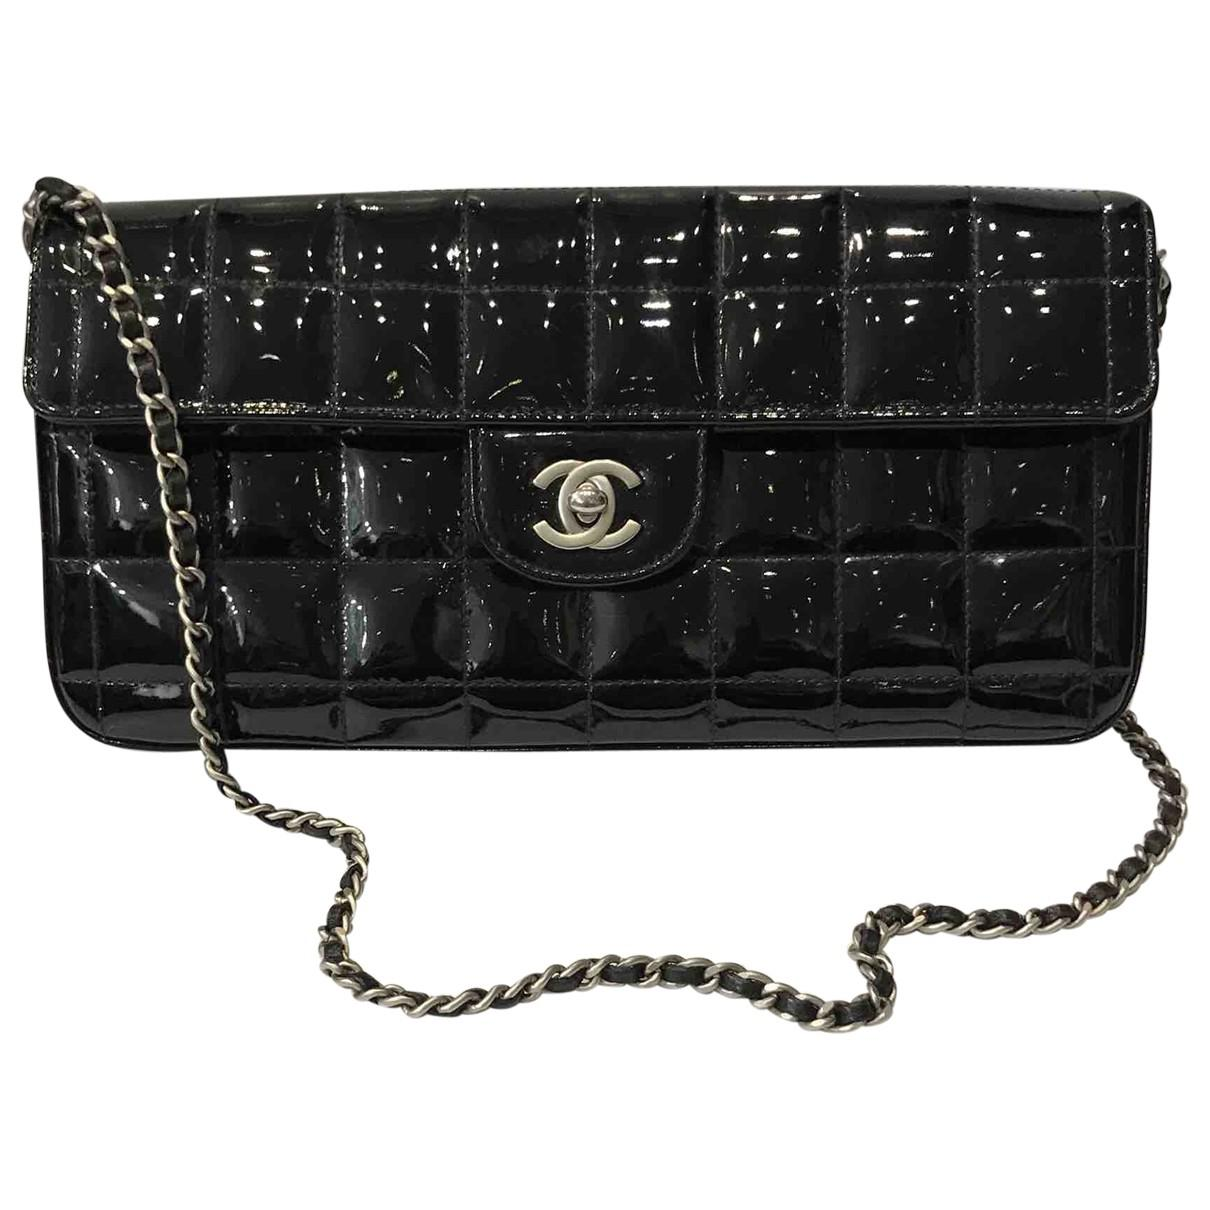 dd97ce1689af Lyst - Chanel Pre-owned East West Chocolate Bar Patent Leather ...